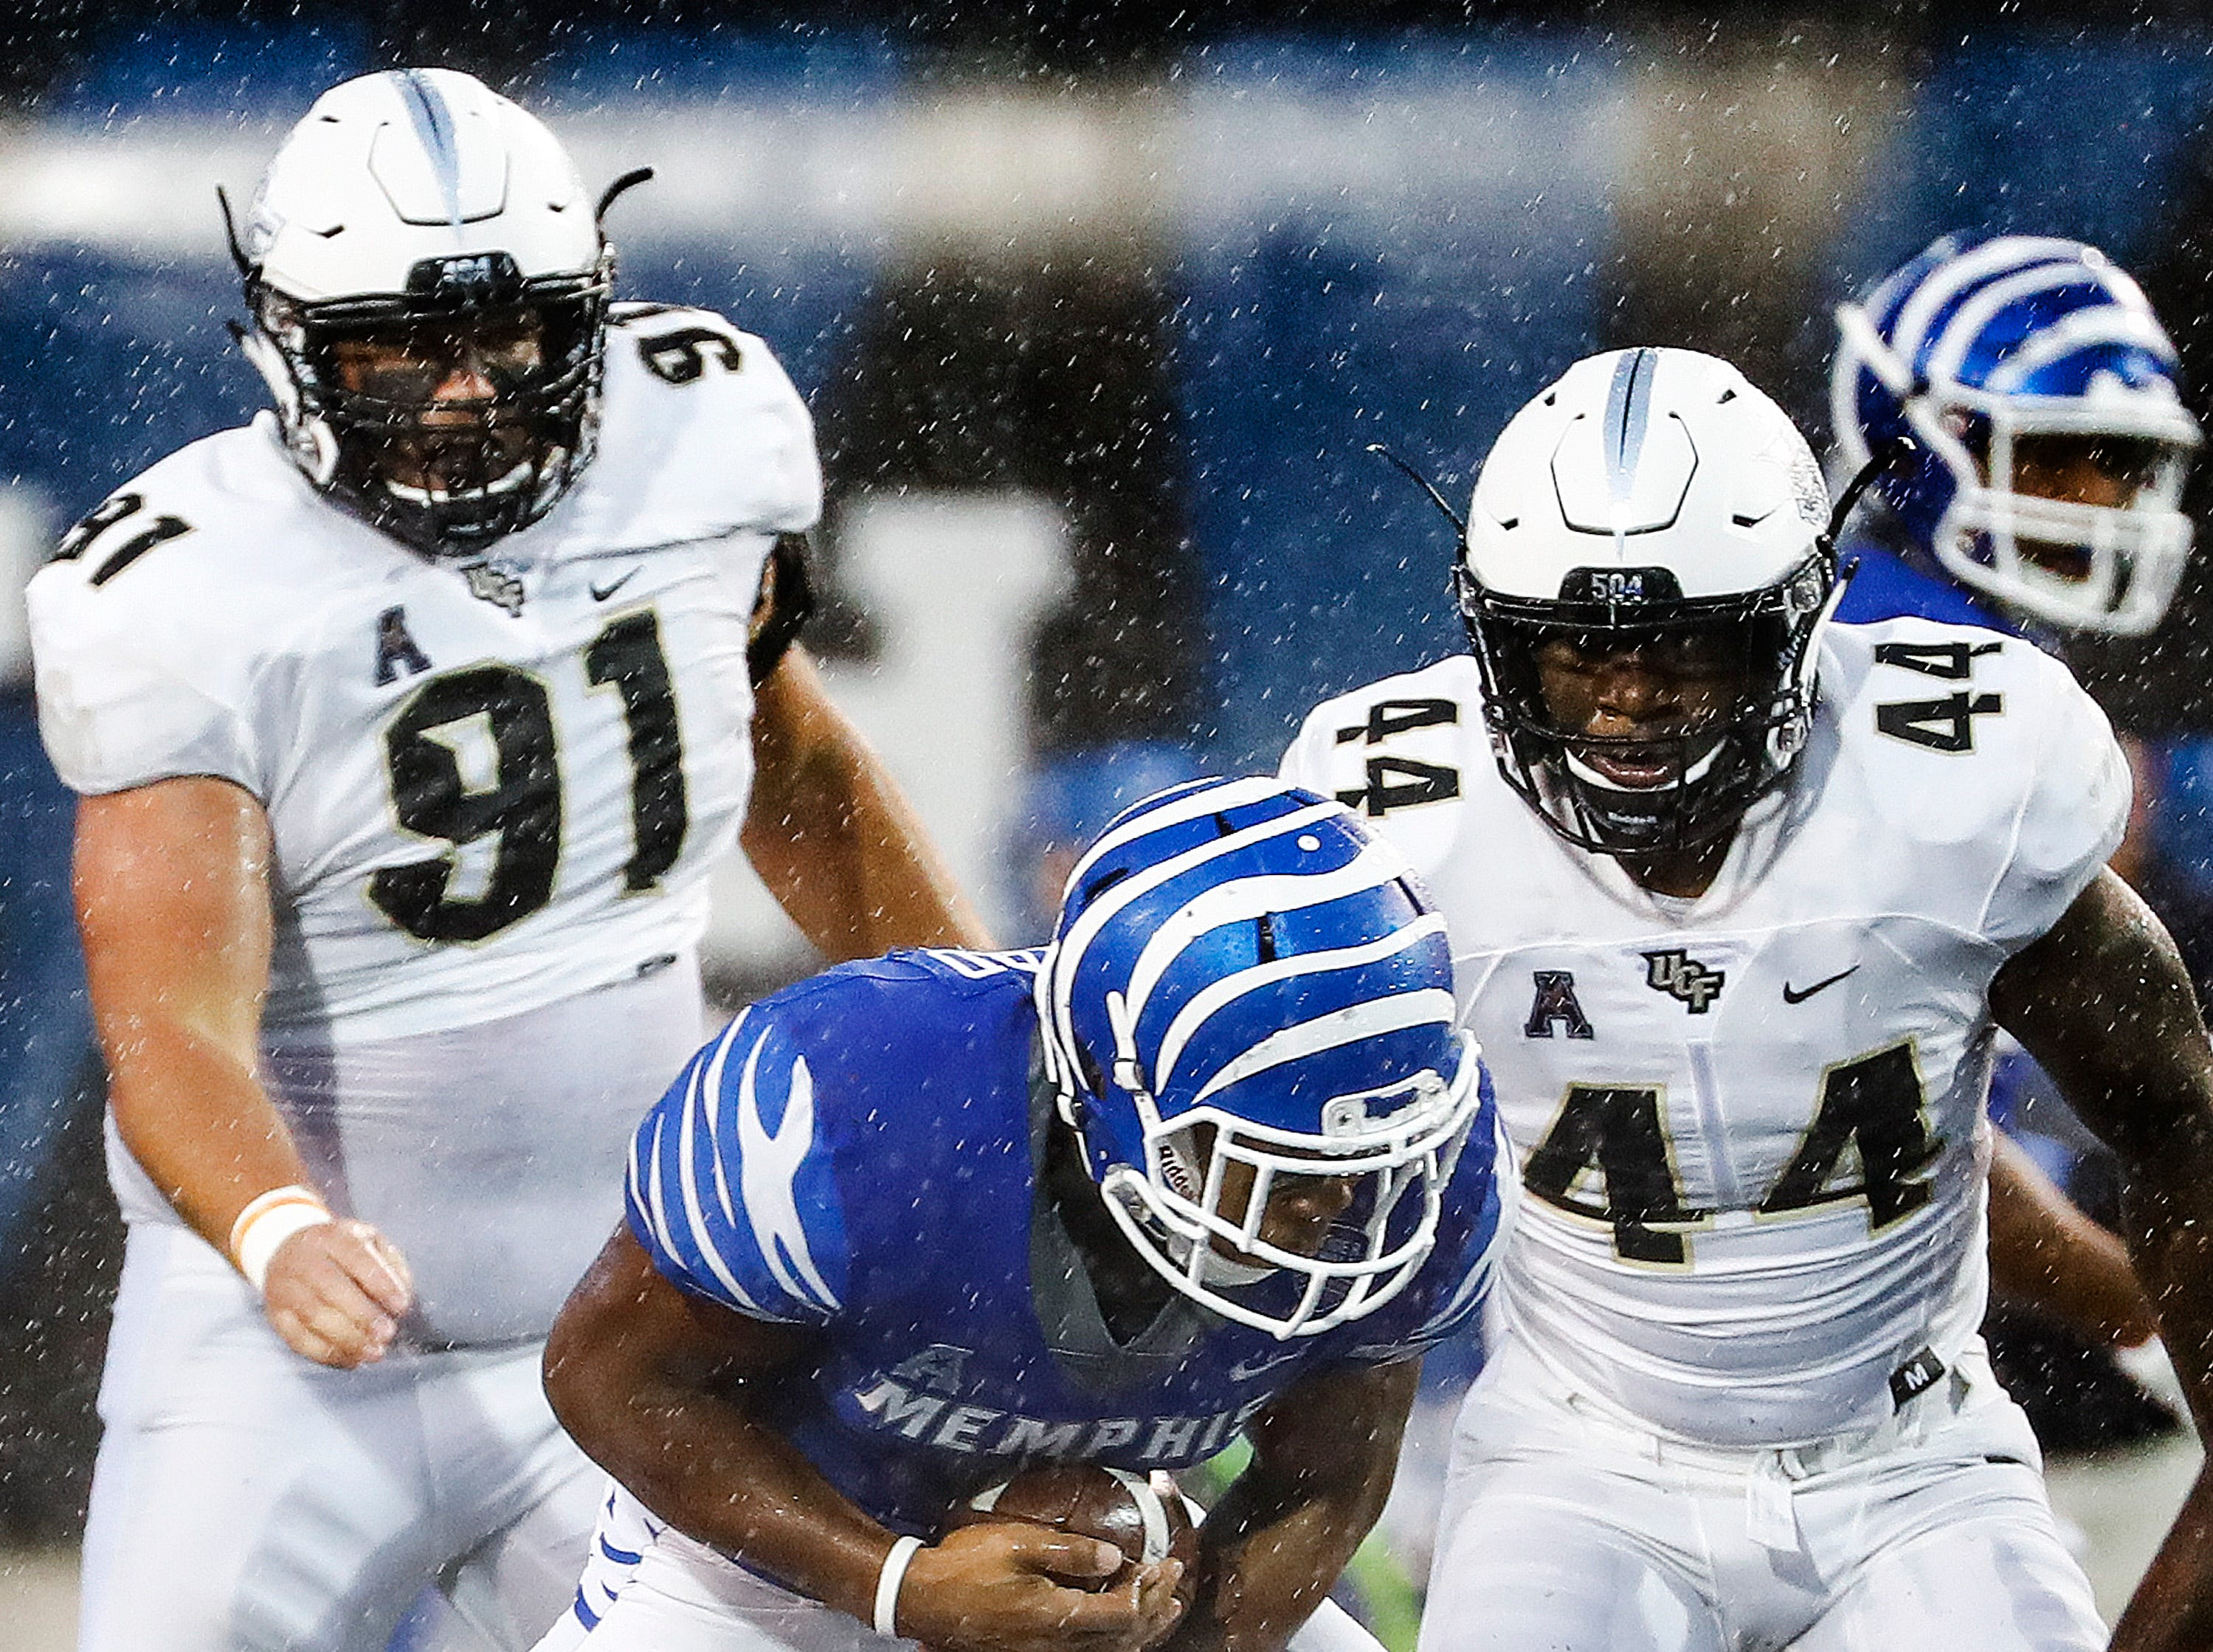 Memphis running back Tony Pollard fights for positive yards against the Central Florida defense during action in Memphis, Tenn., Saturday, October 13, 2018.